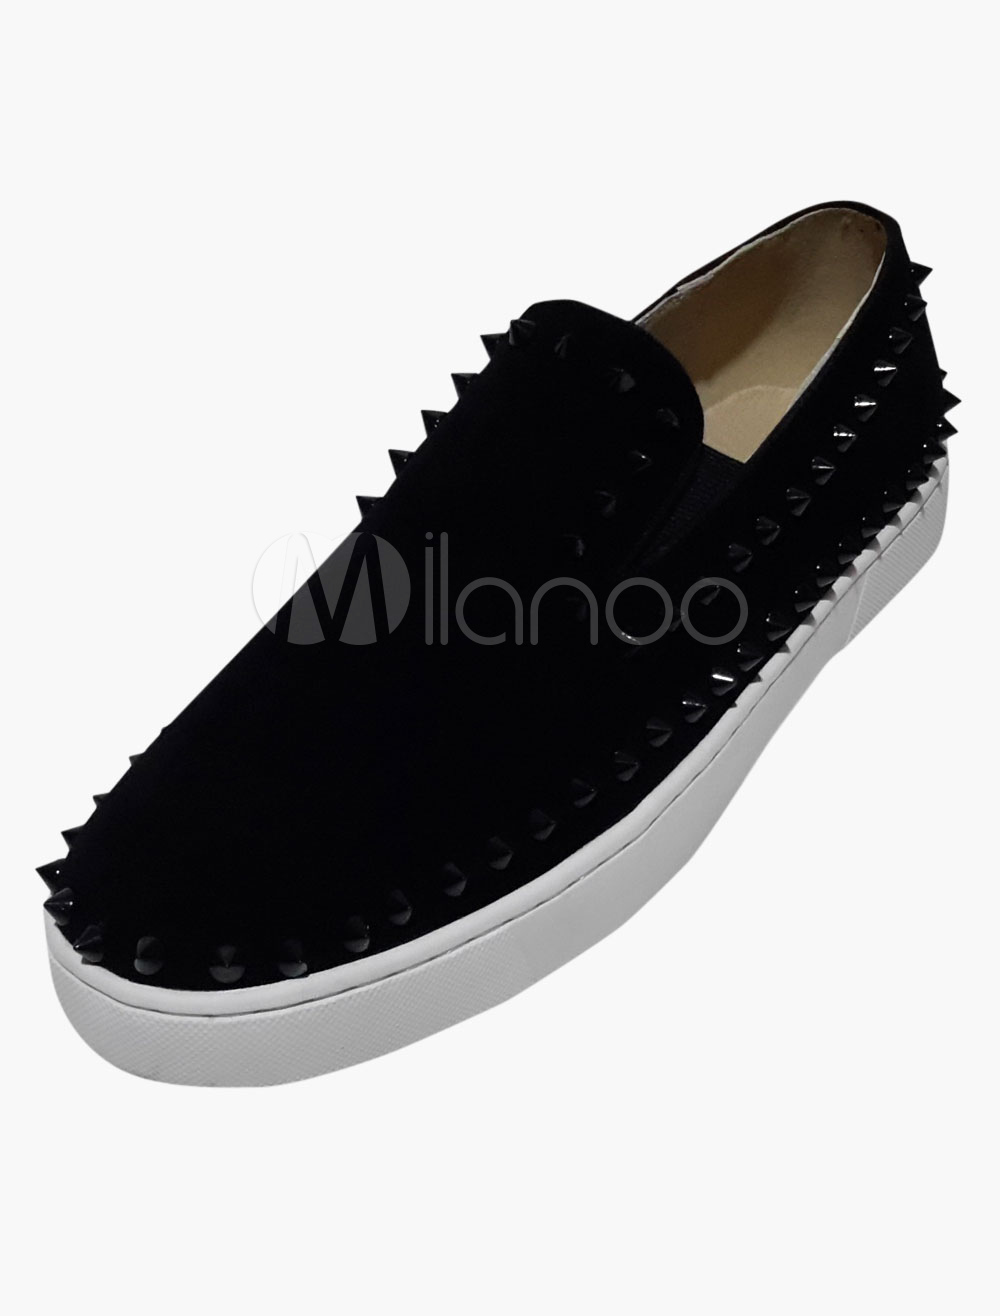 Cosy Monogram Suede Rivets Soft sole Mens Loafer Shoes photo